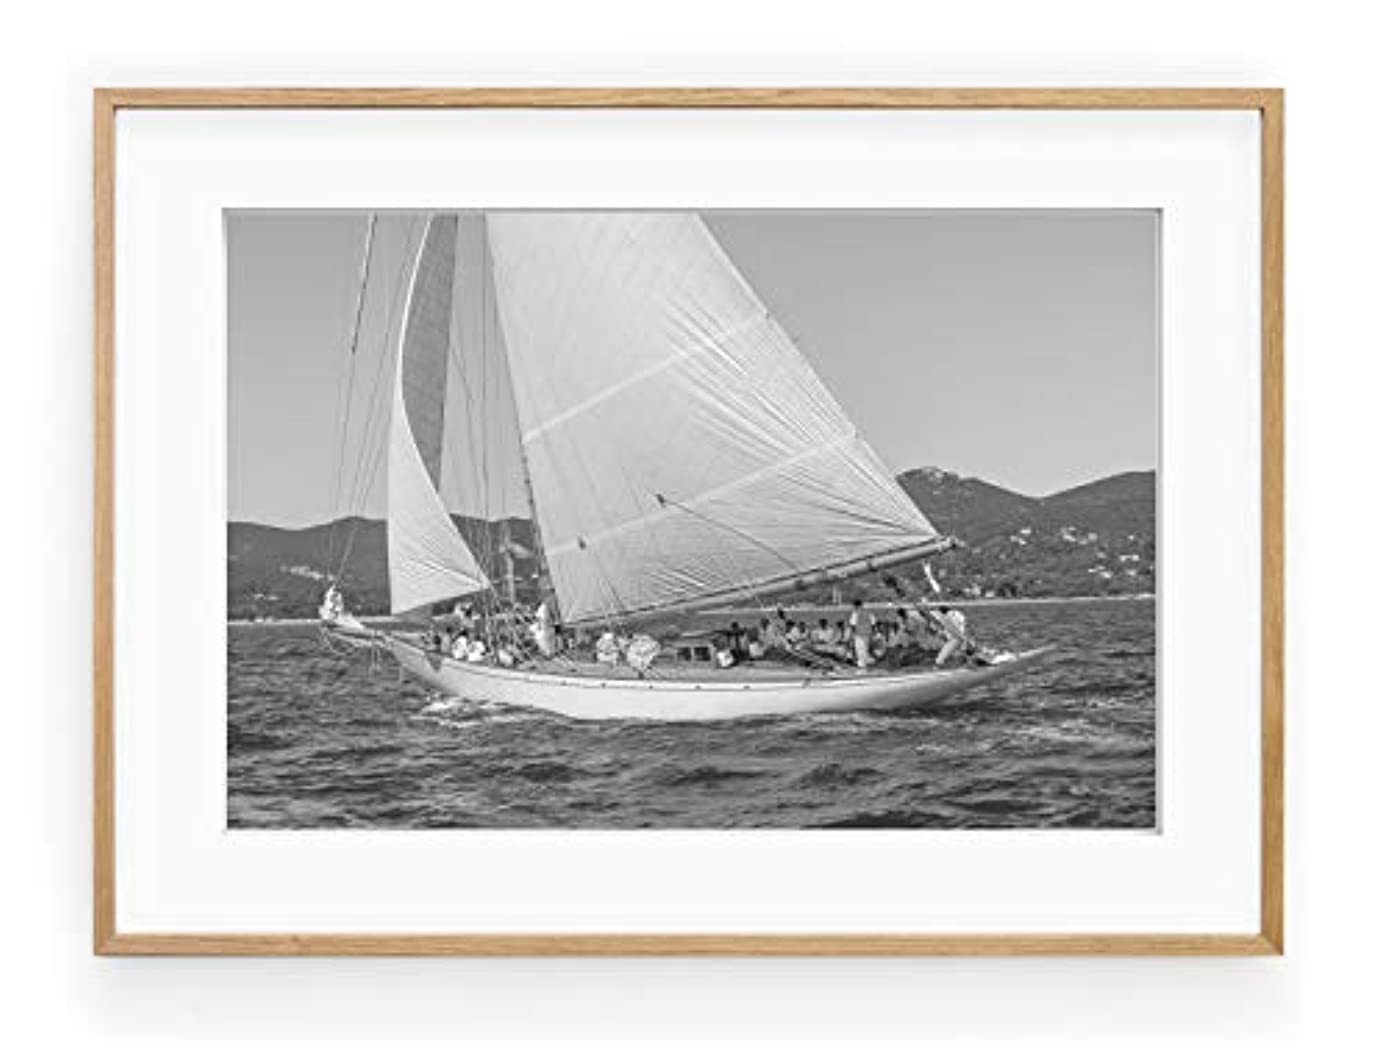 Solid Oak Sailing Boat, Natural Frame, with Mount, Multicolored, 50x70